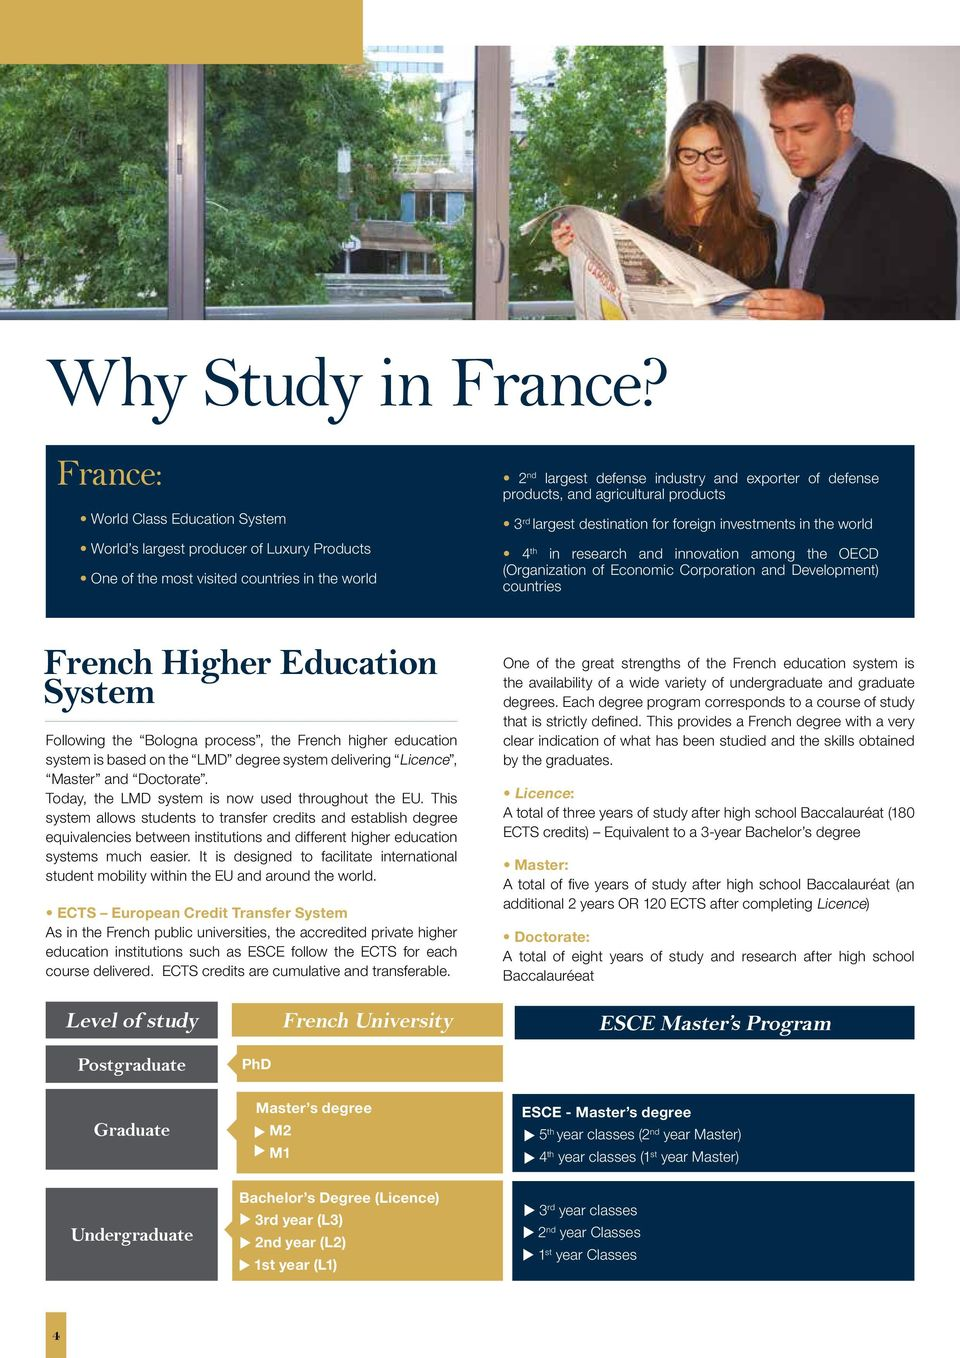 producs 3 rd larges desinaion for foreign invesmens in he world 4 h in research and innovaion among he OECD (Organizaion of Economic Corporaion and Developmen) counries French Higher Educaion Sysem